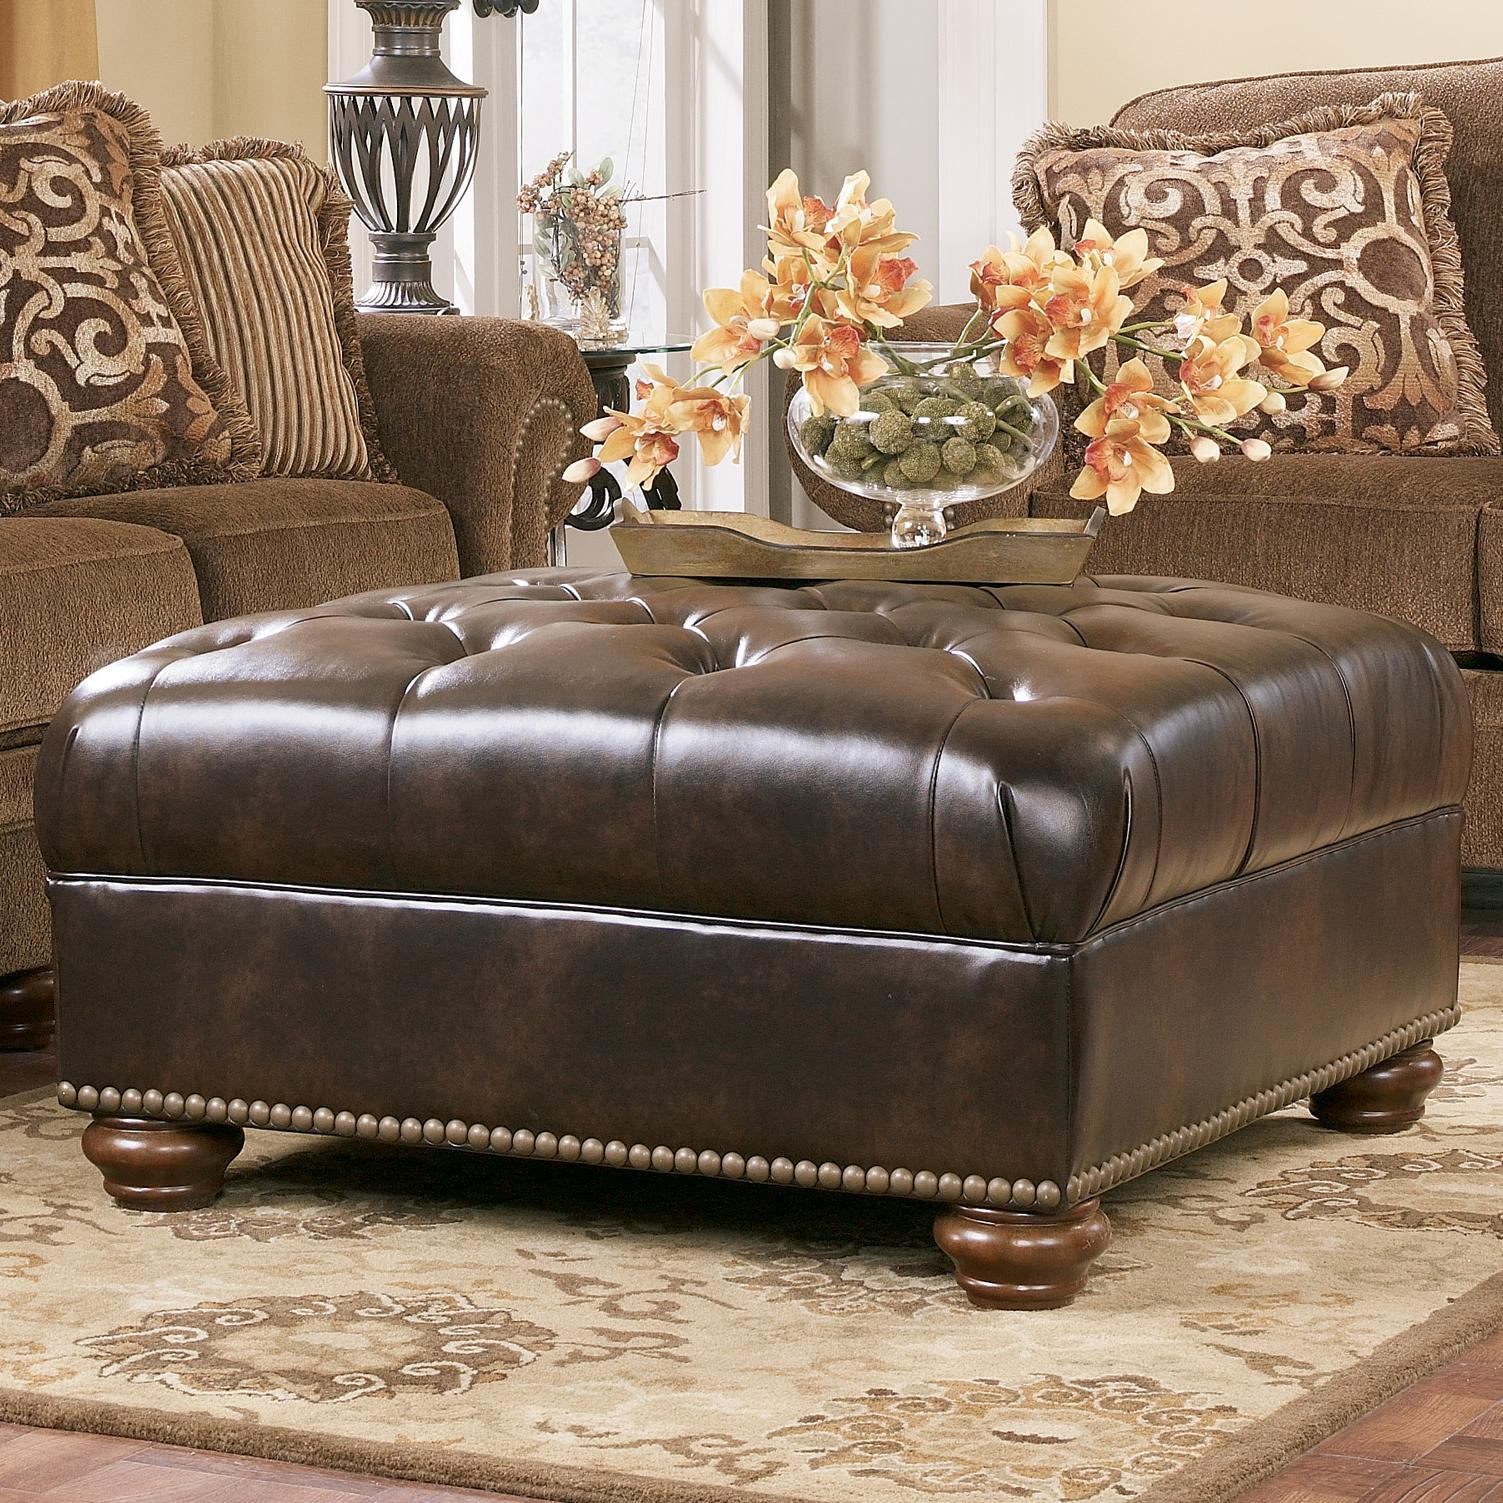 Signature Design by Ashley Presidio - Antique Oversized Accent Ottoman - Item Number: 7670008